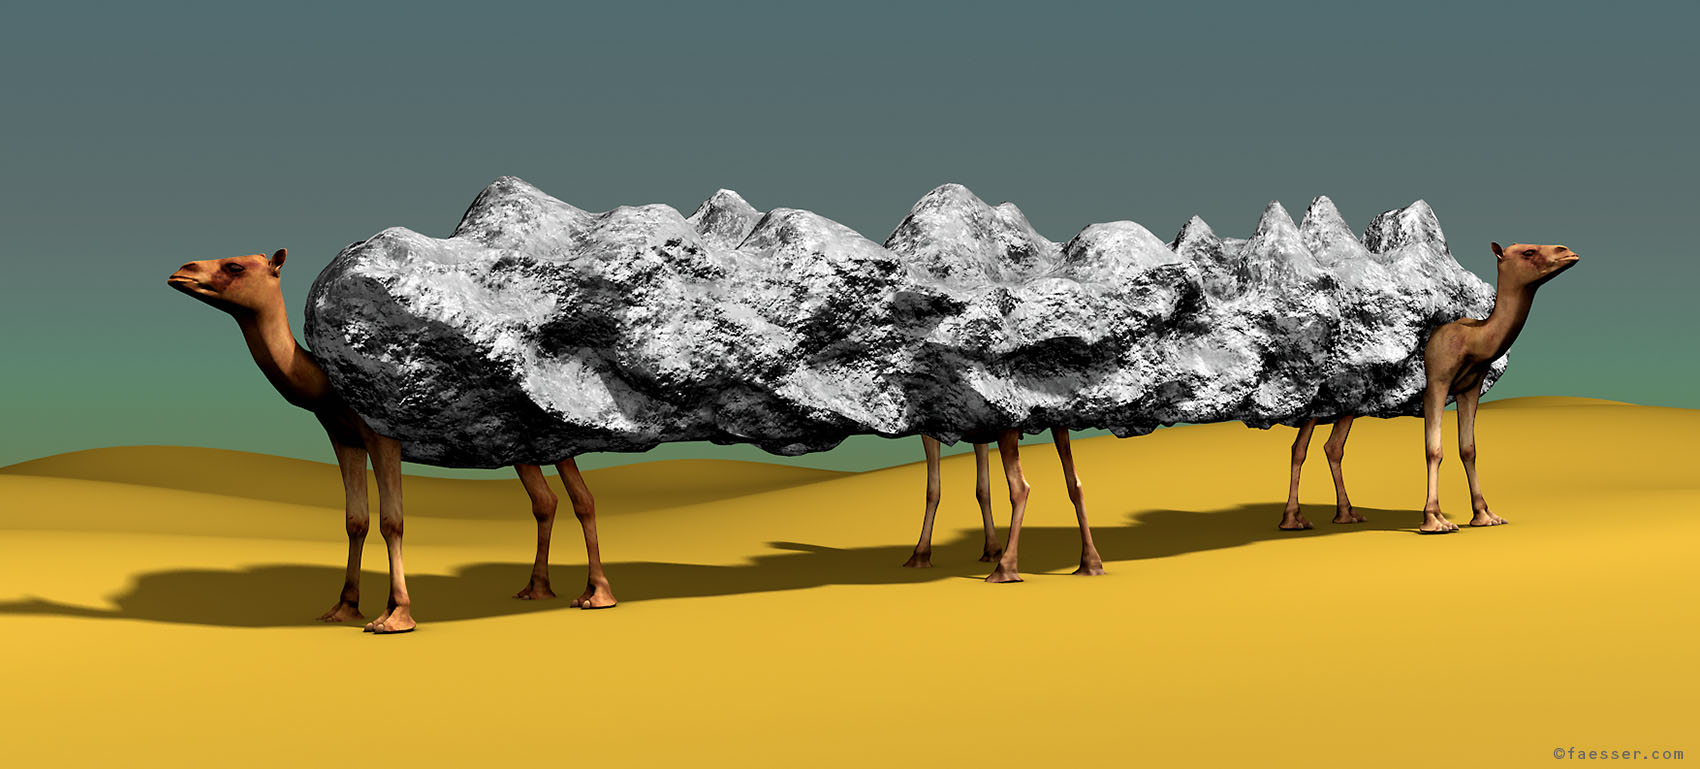 Mountain-Camels: Public sculpture study for the Emirates; artist Roland Faesser, sculptor and painter 2011